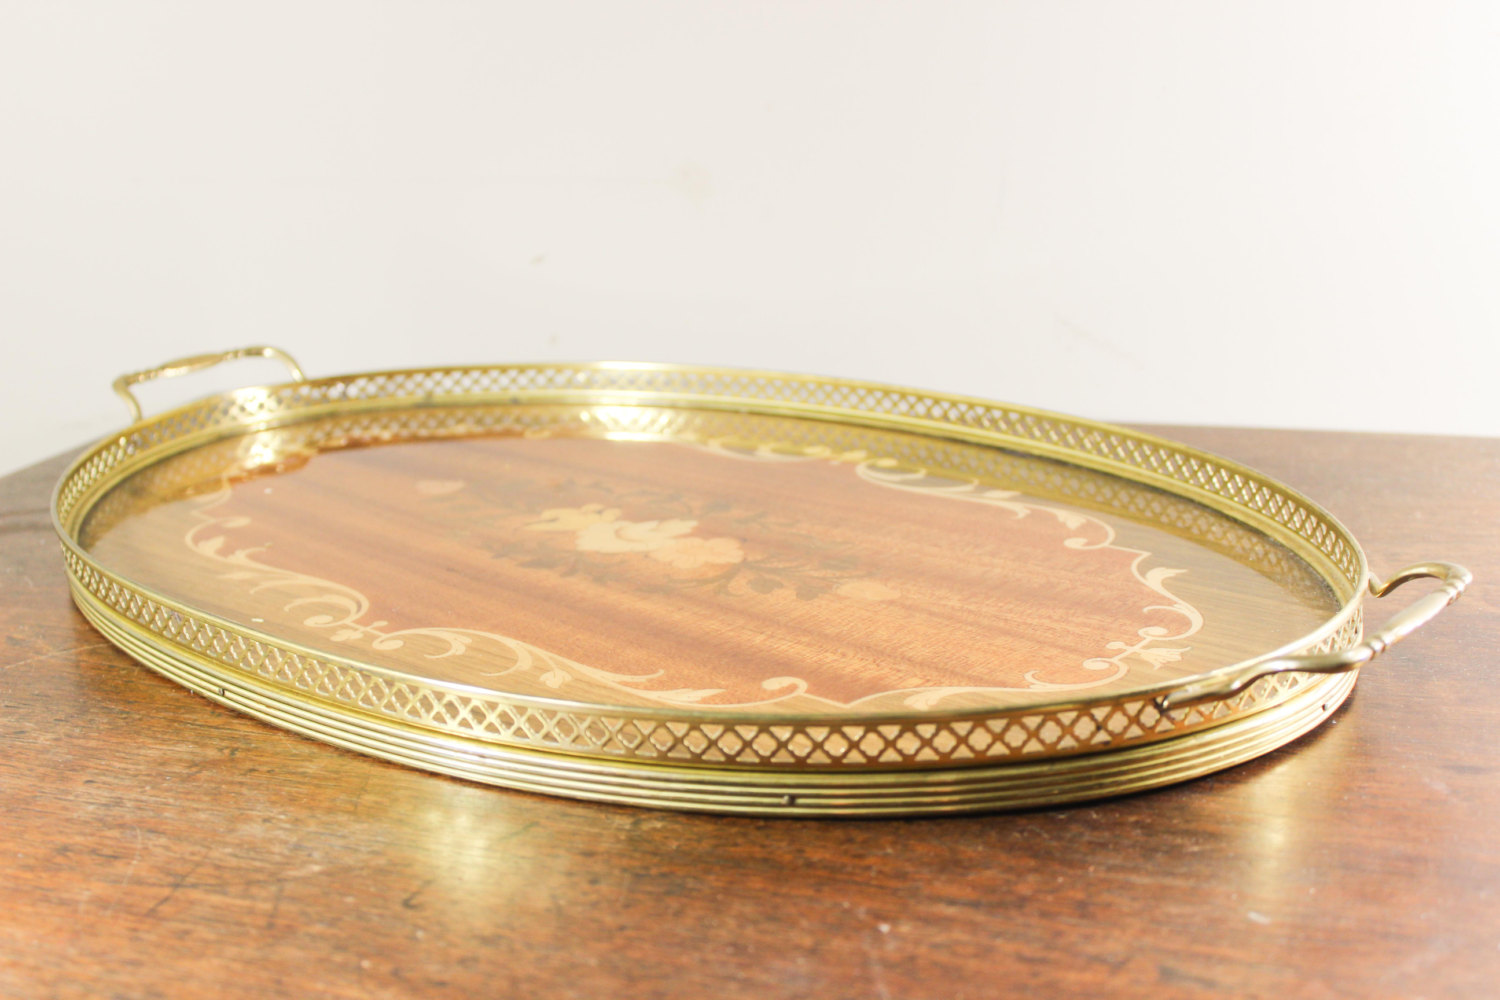 Wooden Inlaid Oval Serving Tray